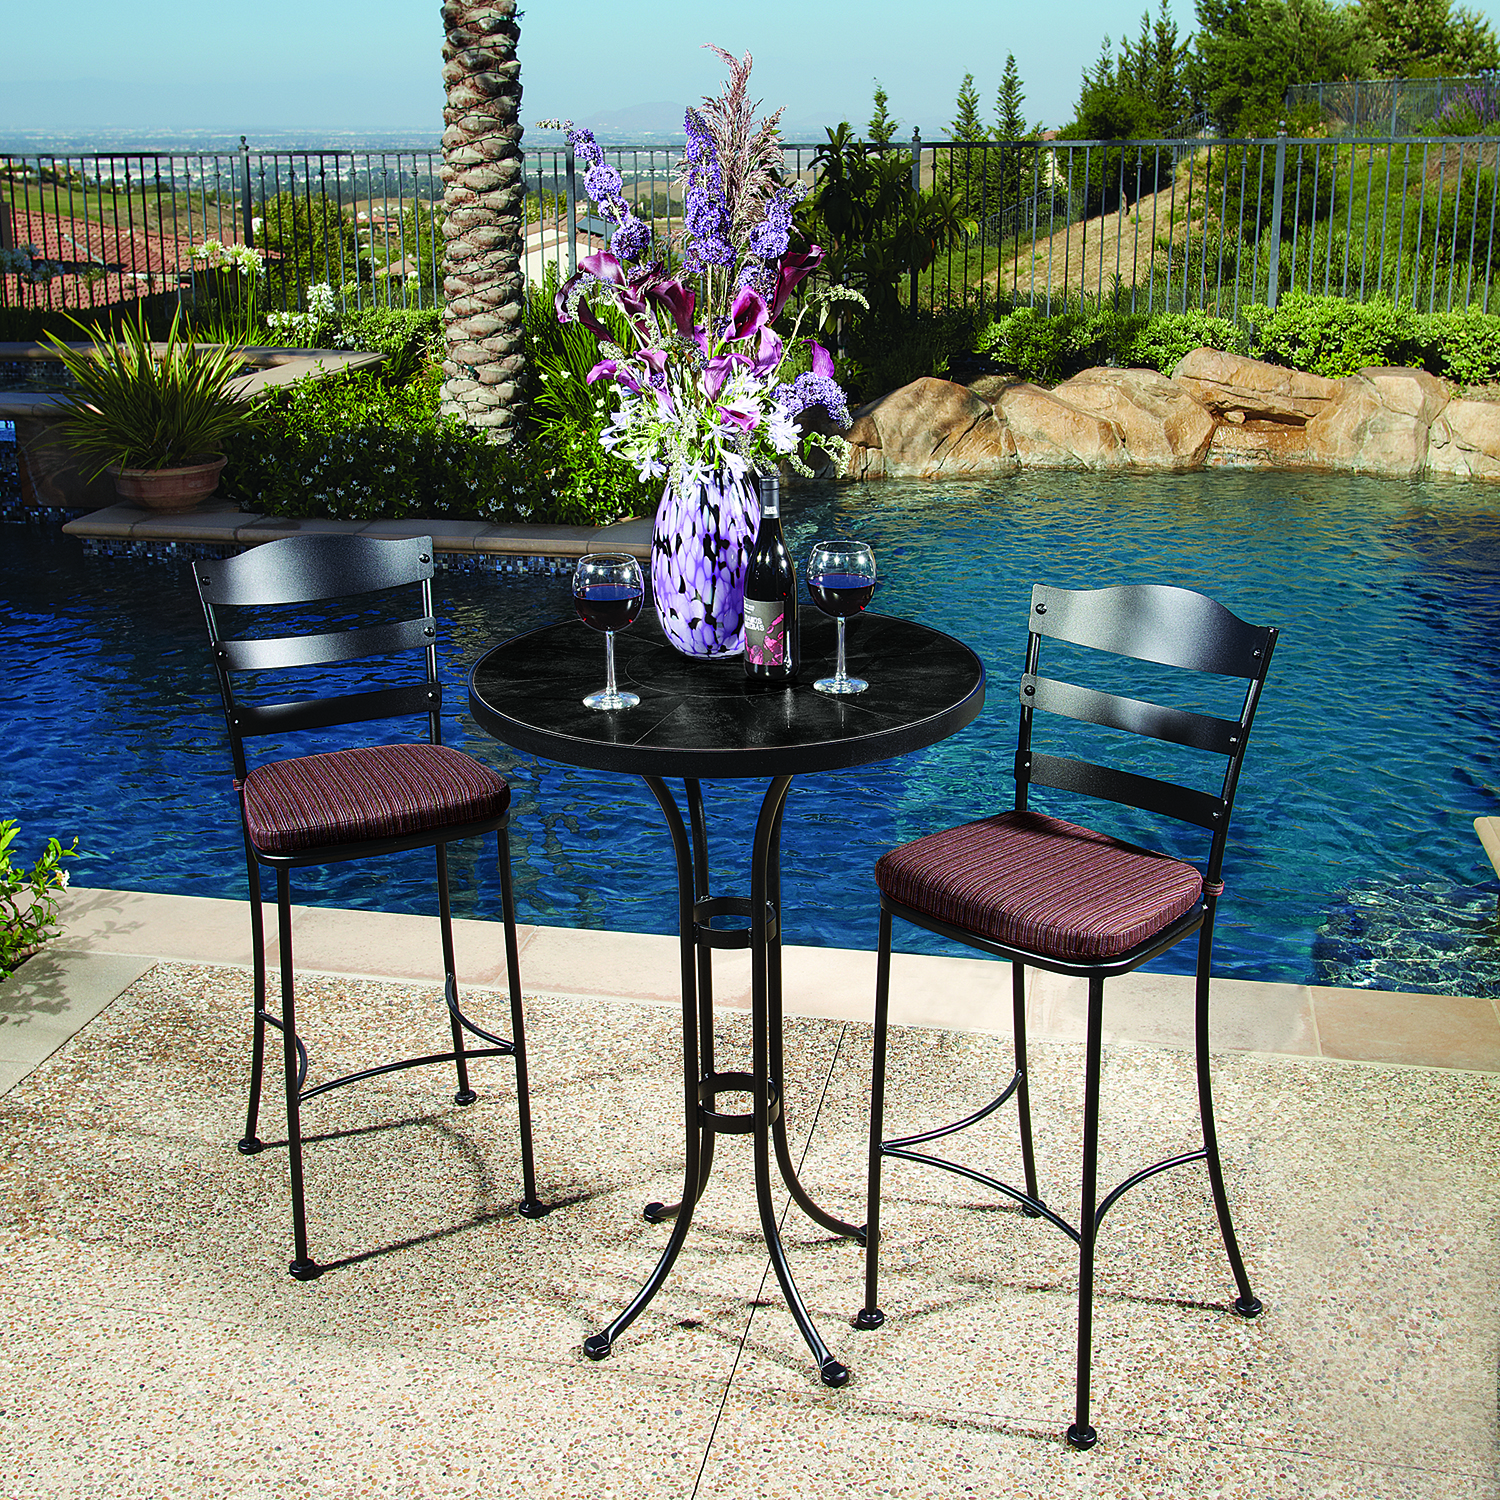 Super Ow Lee Patio Furniture Thatcher Pools And Spas Download Free Architecture Designs Viewormadebymaigaardcom